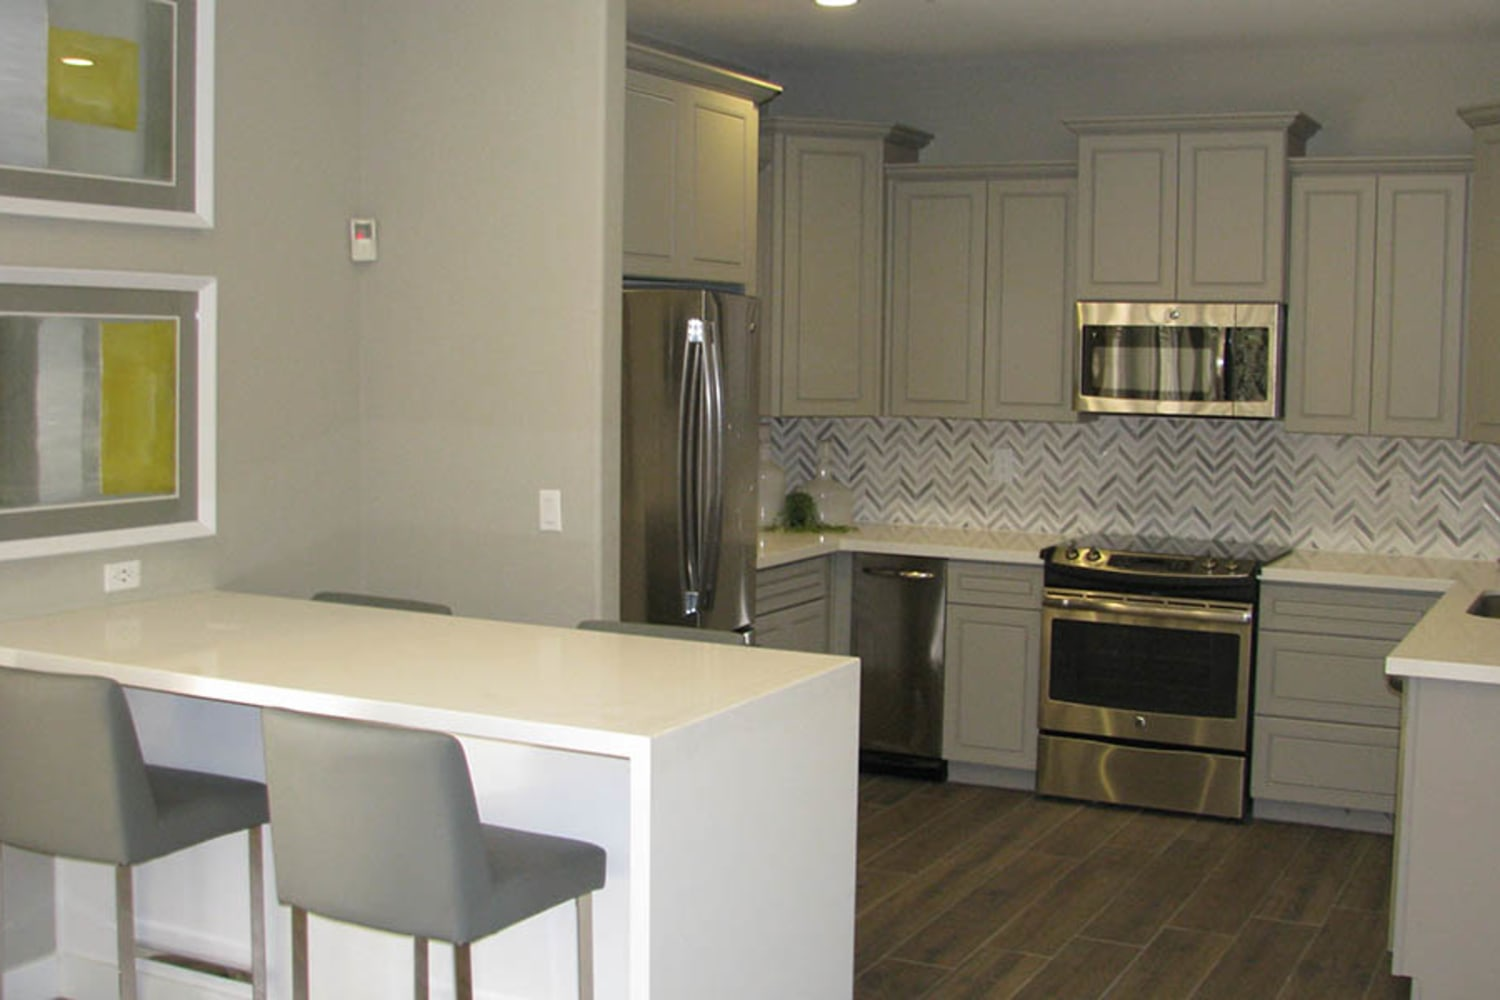 Ocotillo Bay Apartments in Chandler, Arizona, offer large kitchens with ample counter space and breakfast bars